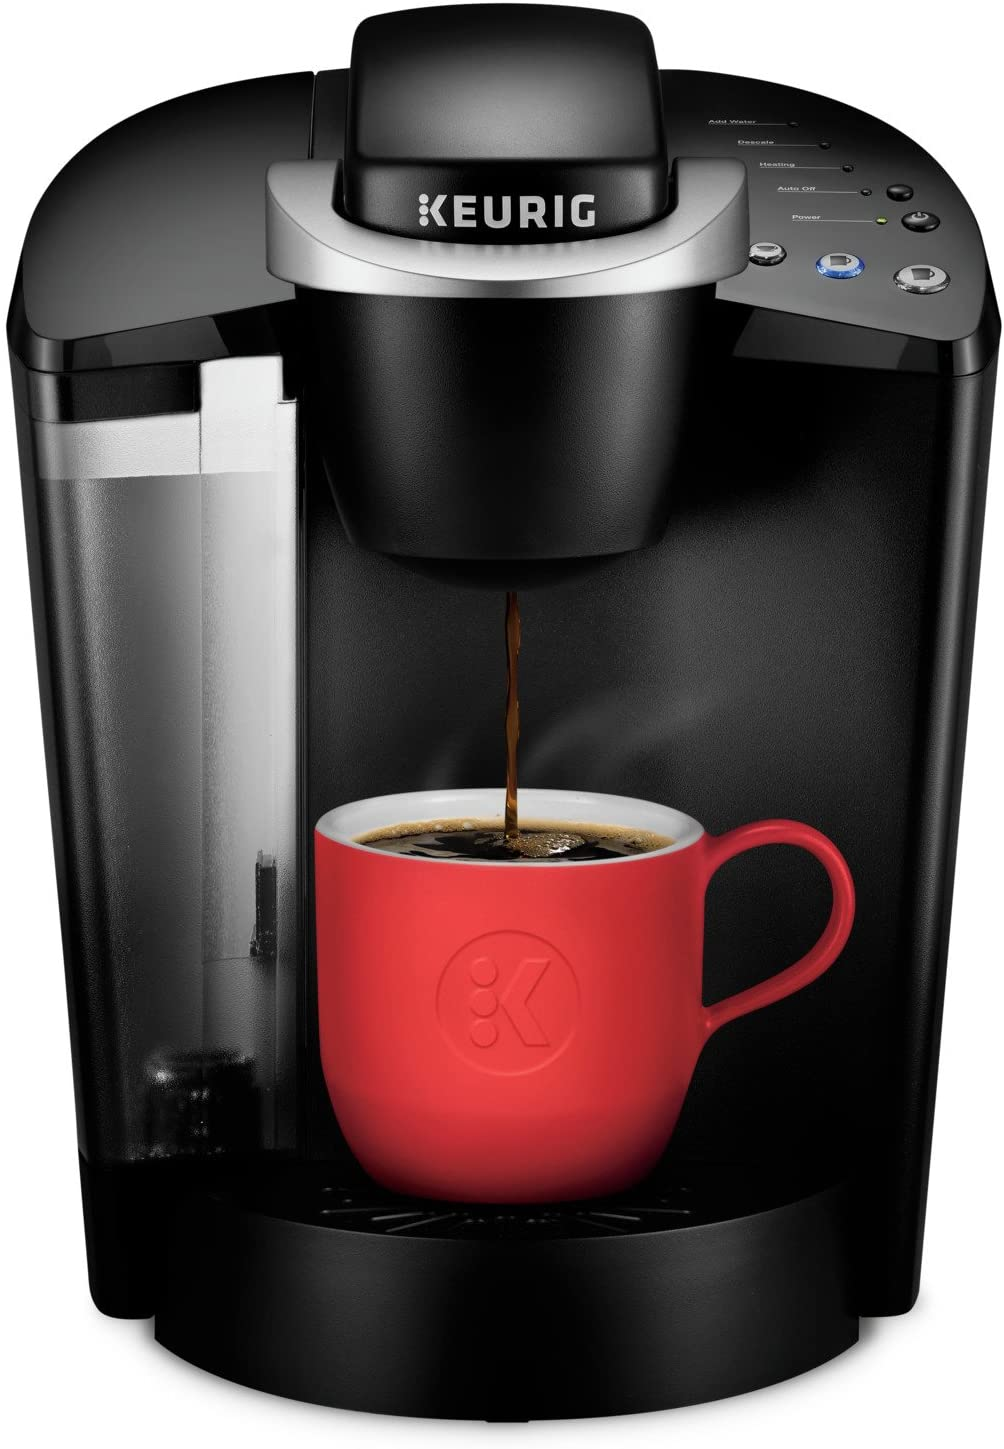 How Does a Keurig Coffee Maker Work?